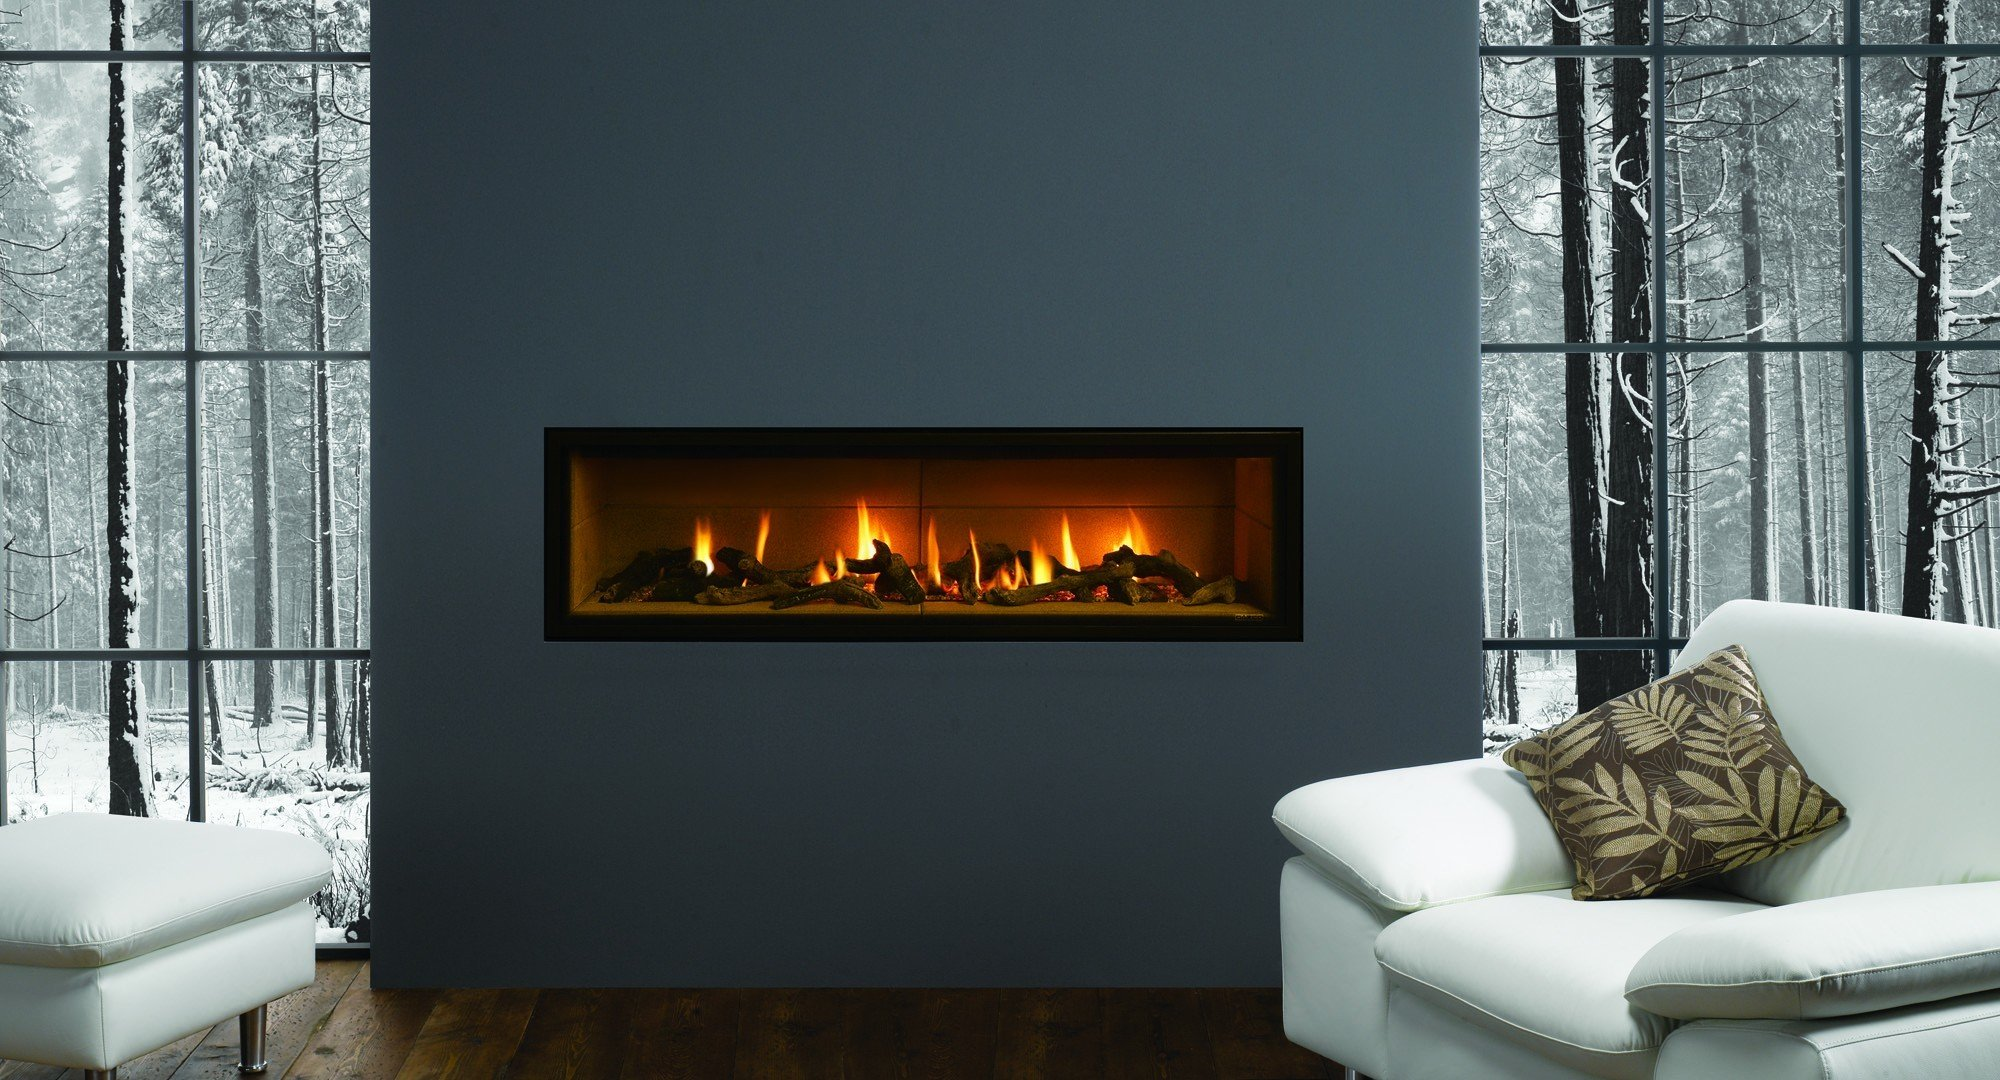 Design Room Fireplace Fire Snow Winter Trees Nature Chairs